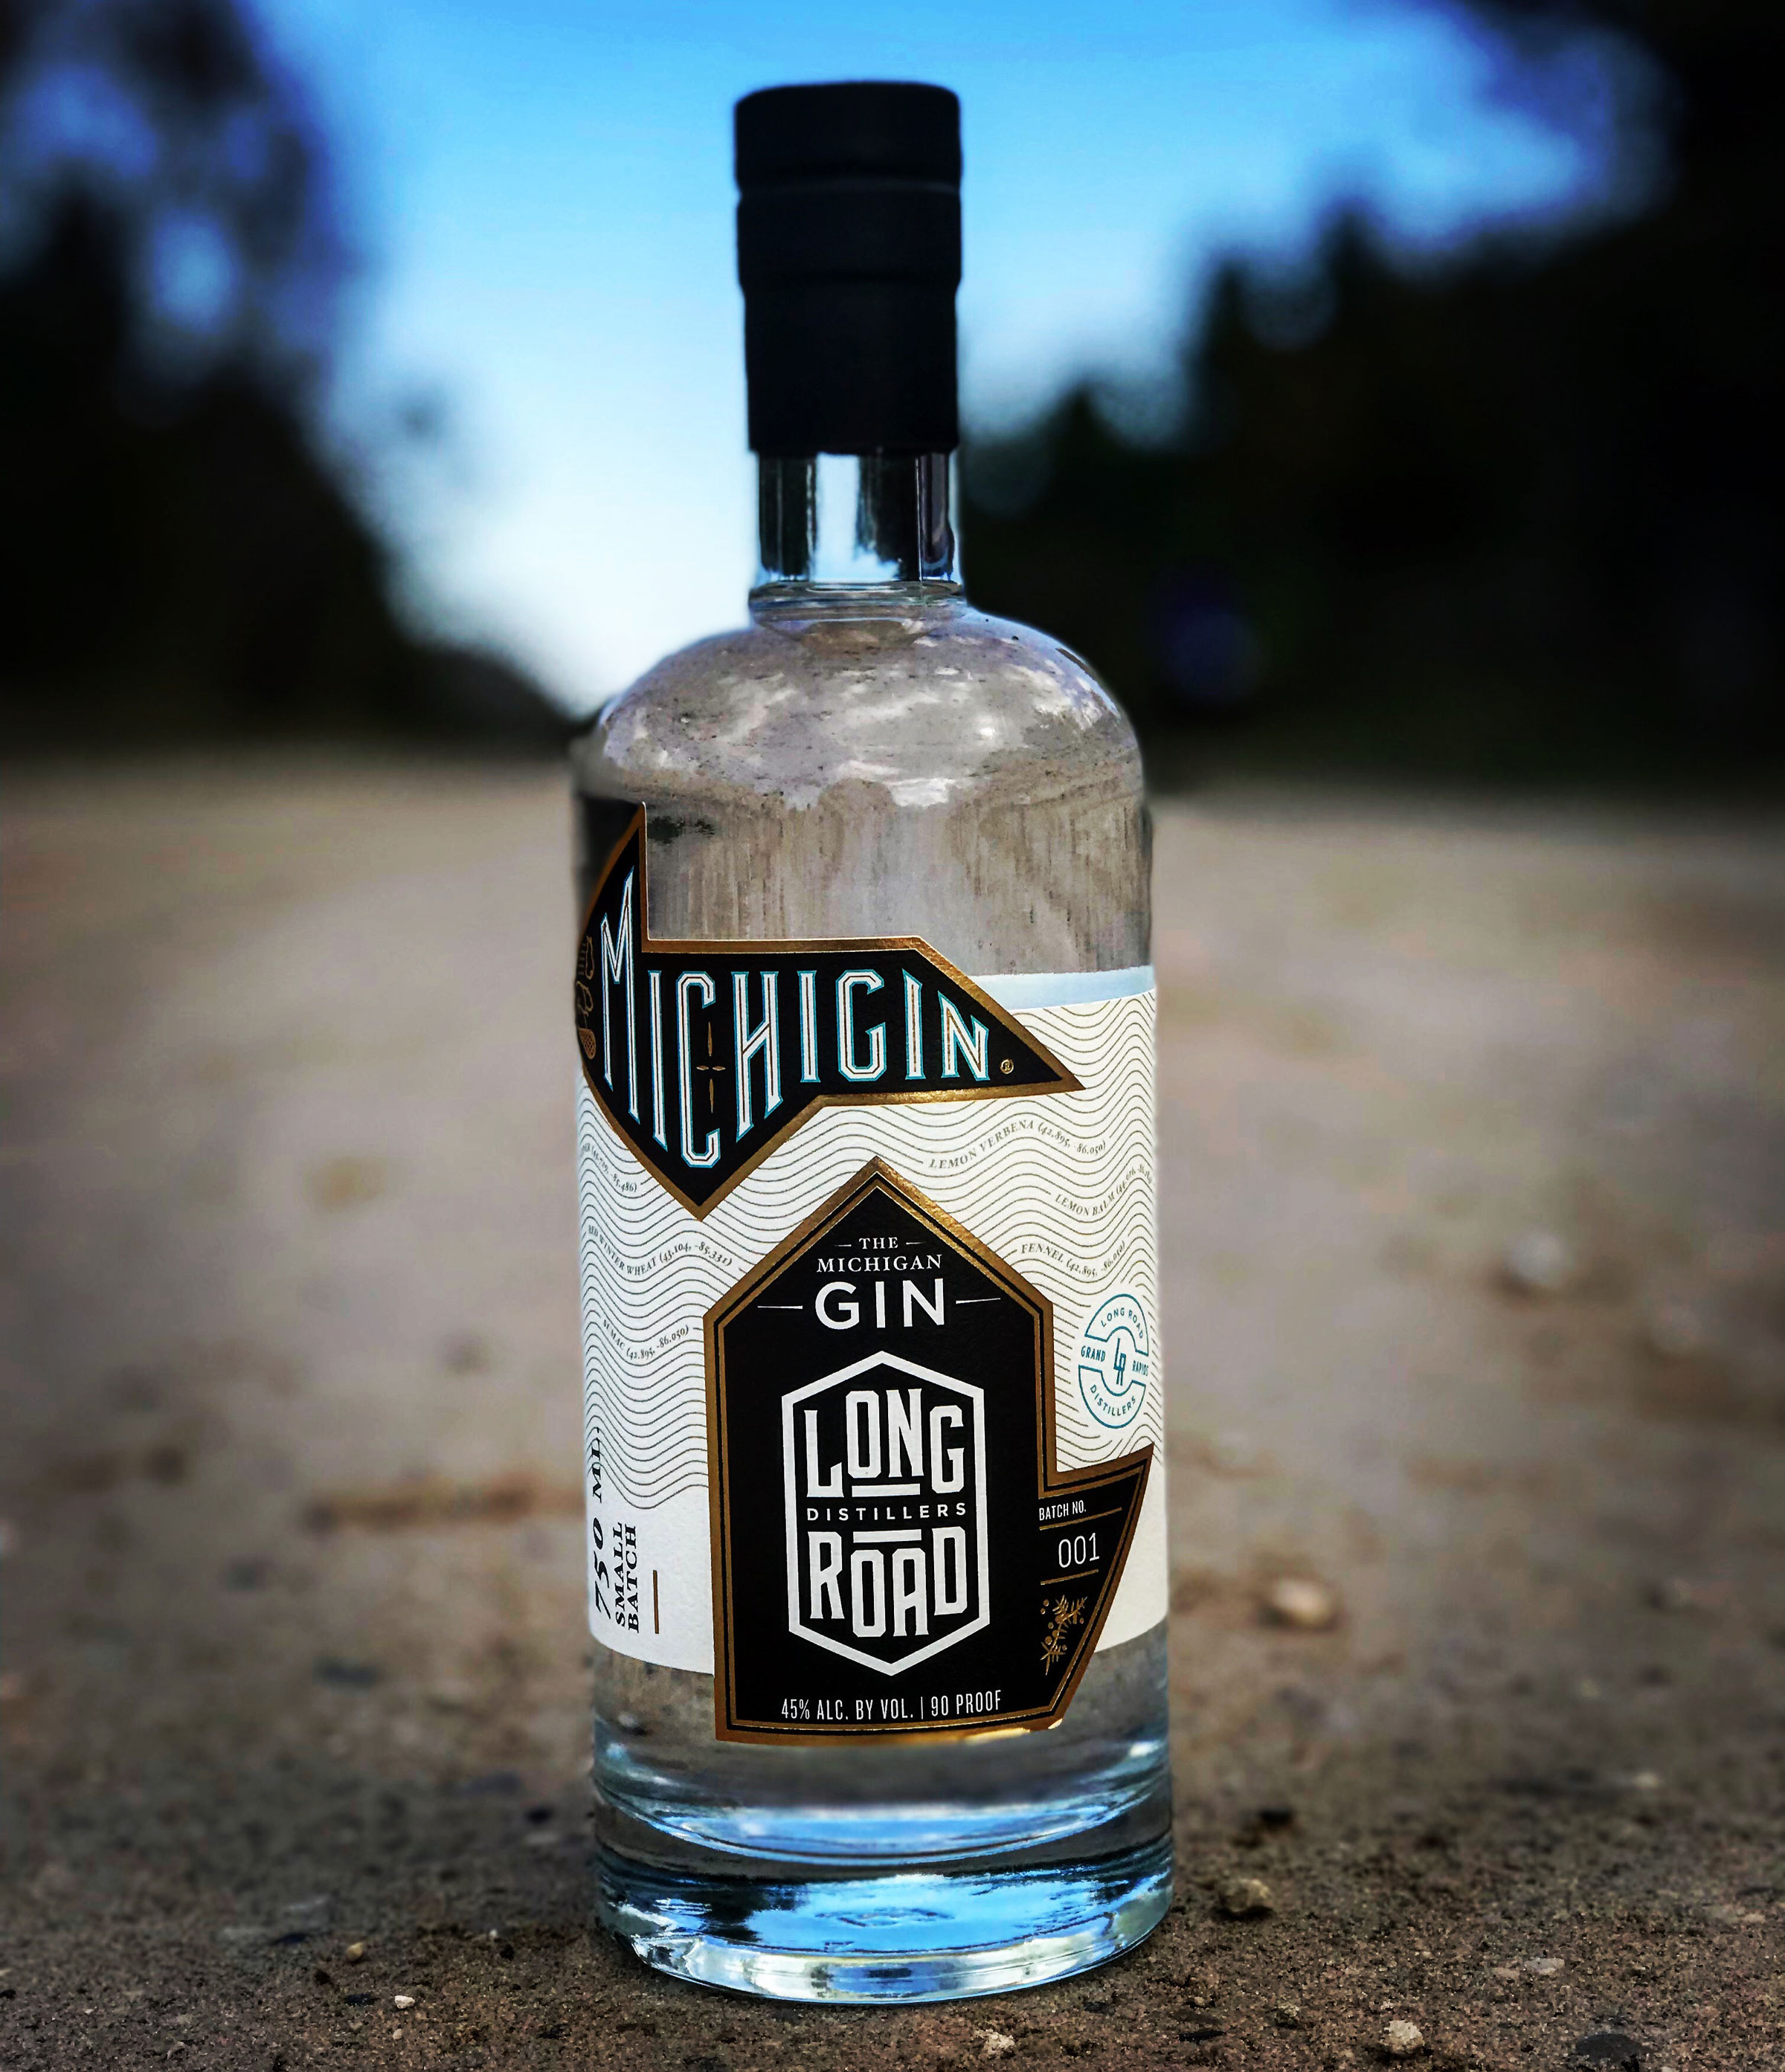 Long Road brings back second batch of Michigin.